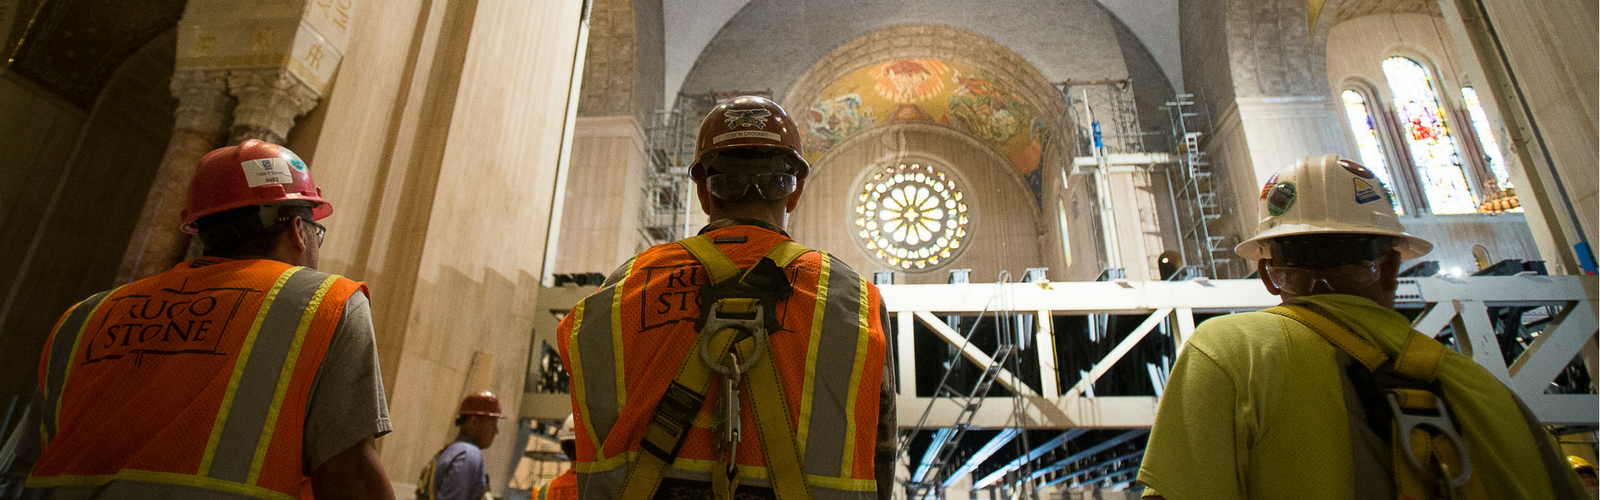 See the Artisans Install the Mosaic